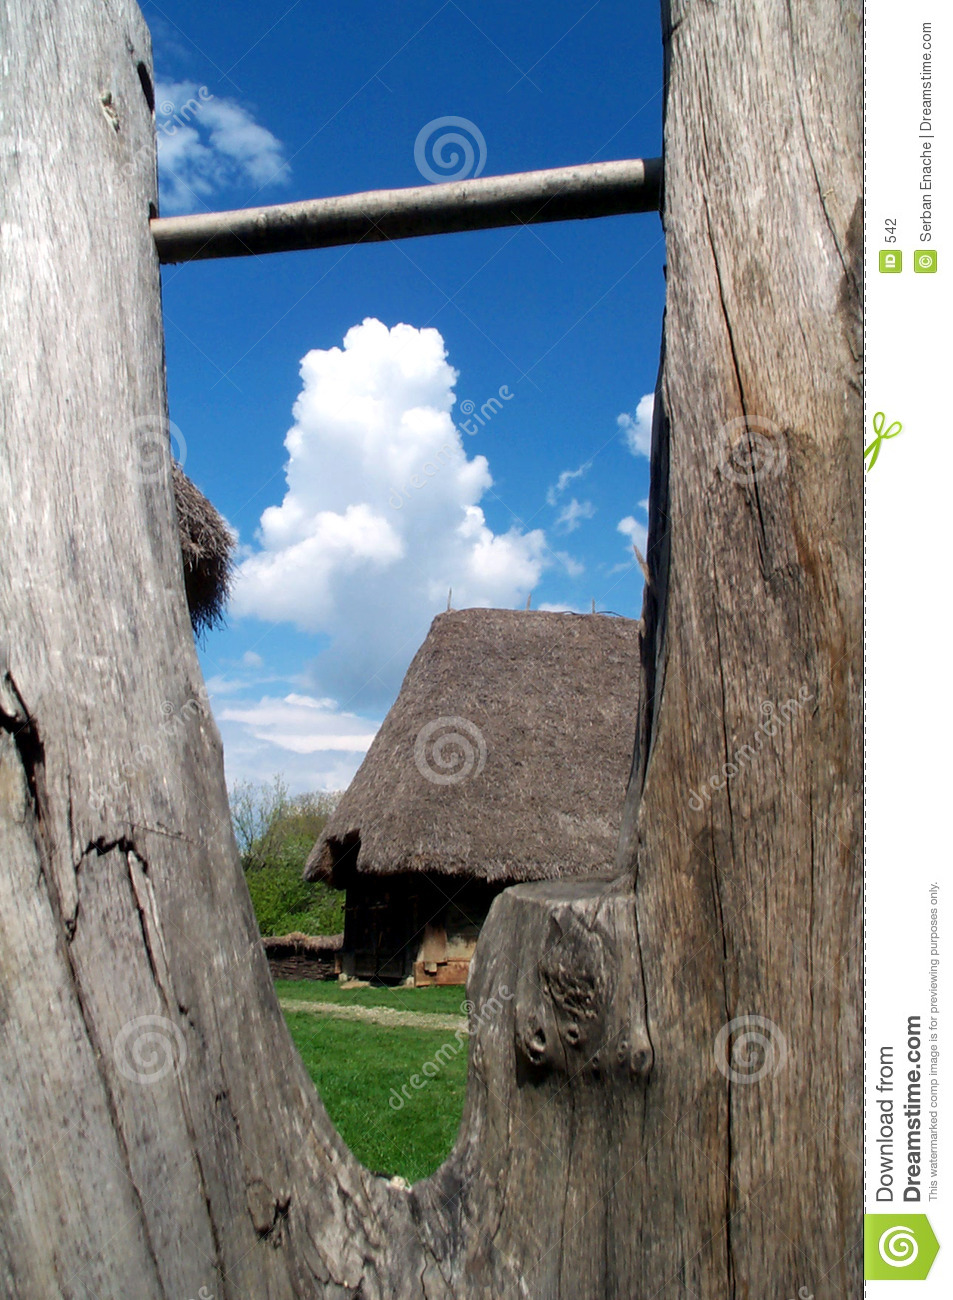 Country house seen through wooden fence